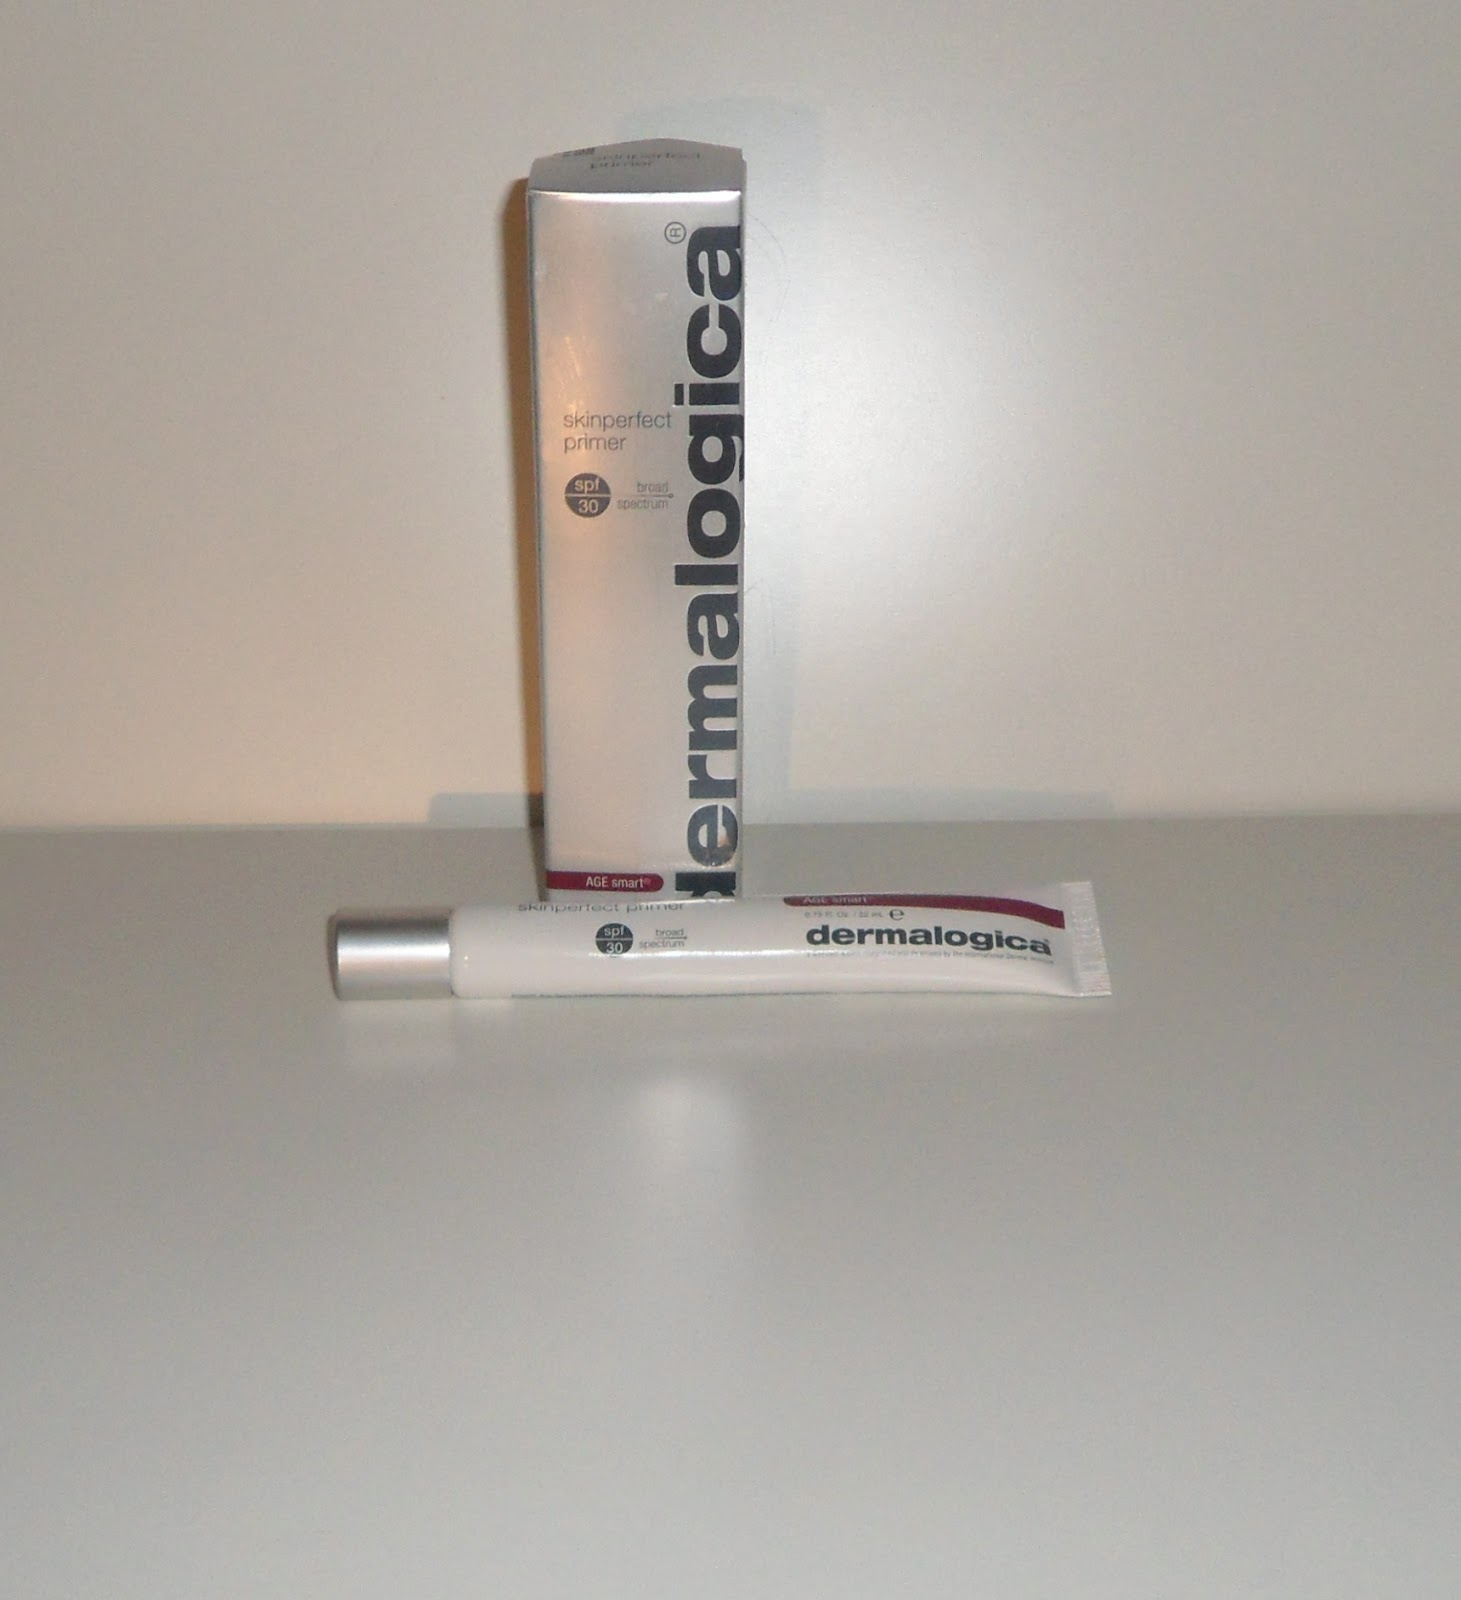 Ima - Gyaru Fashion and Beauty: Sponsored review - Dermalogica ...